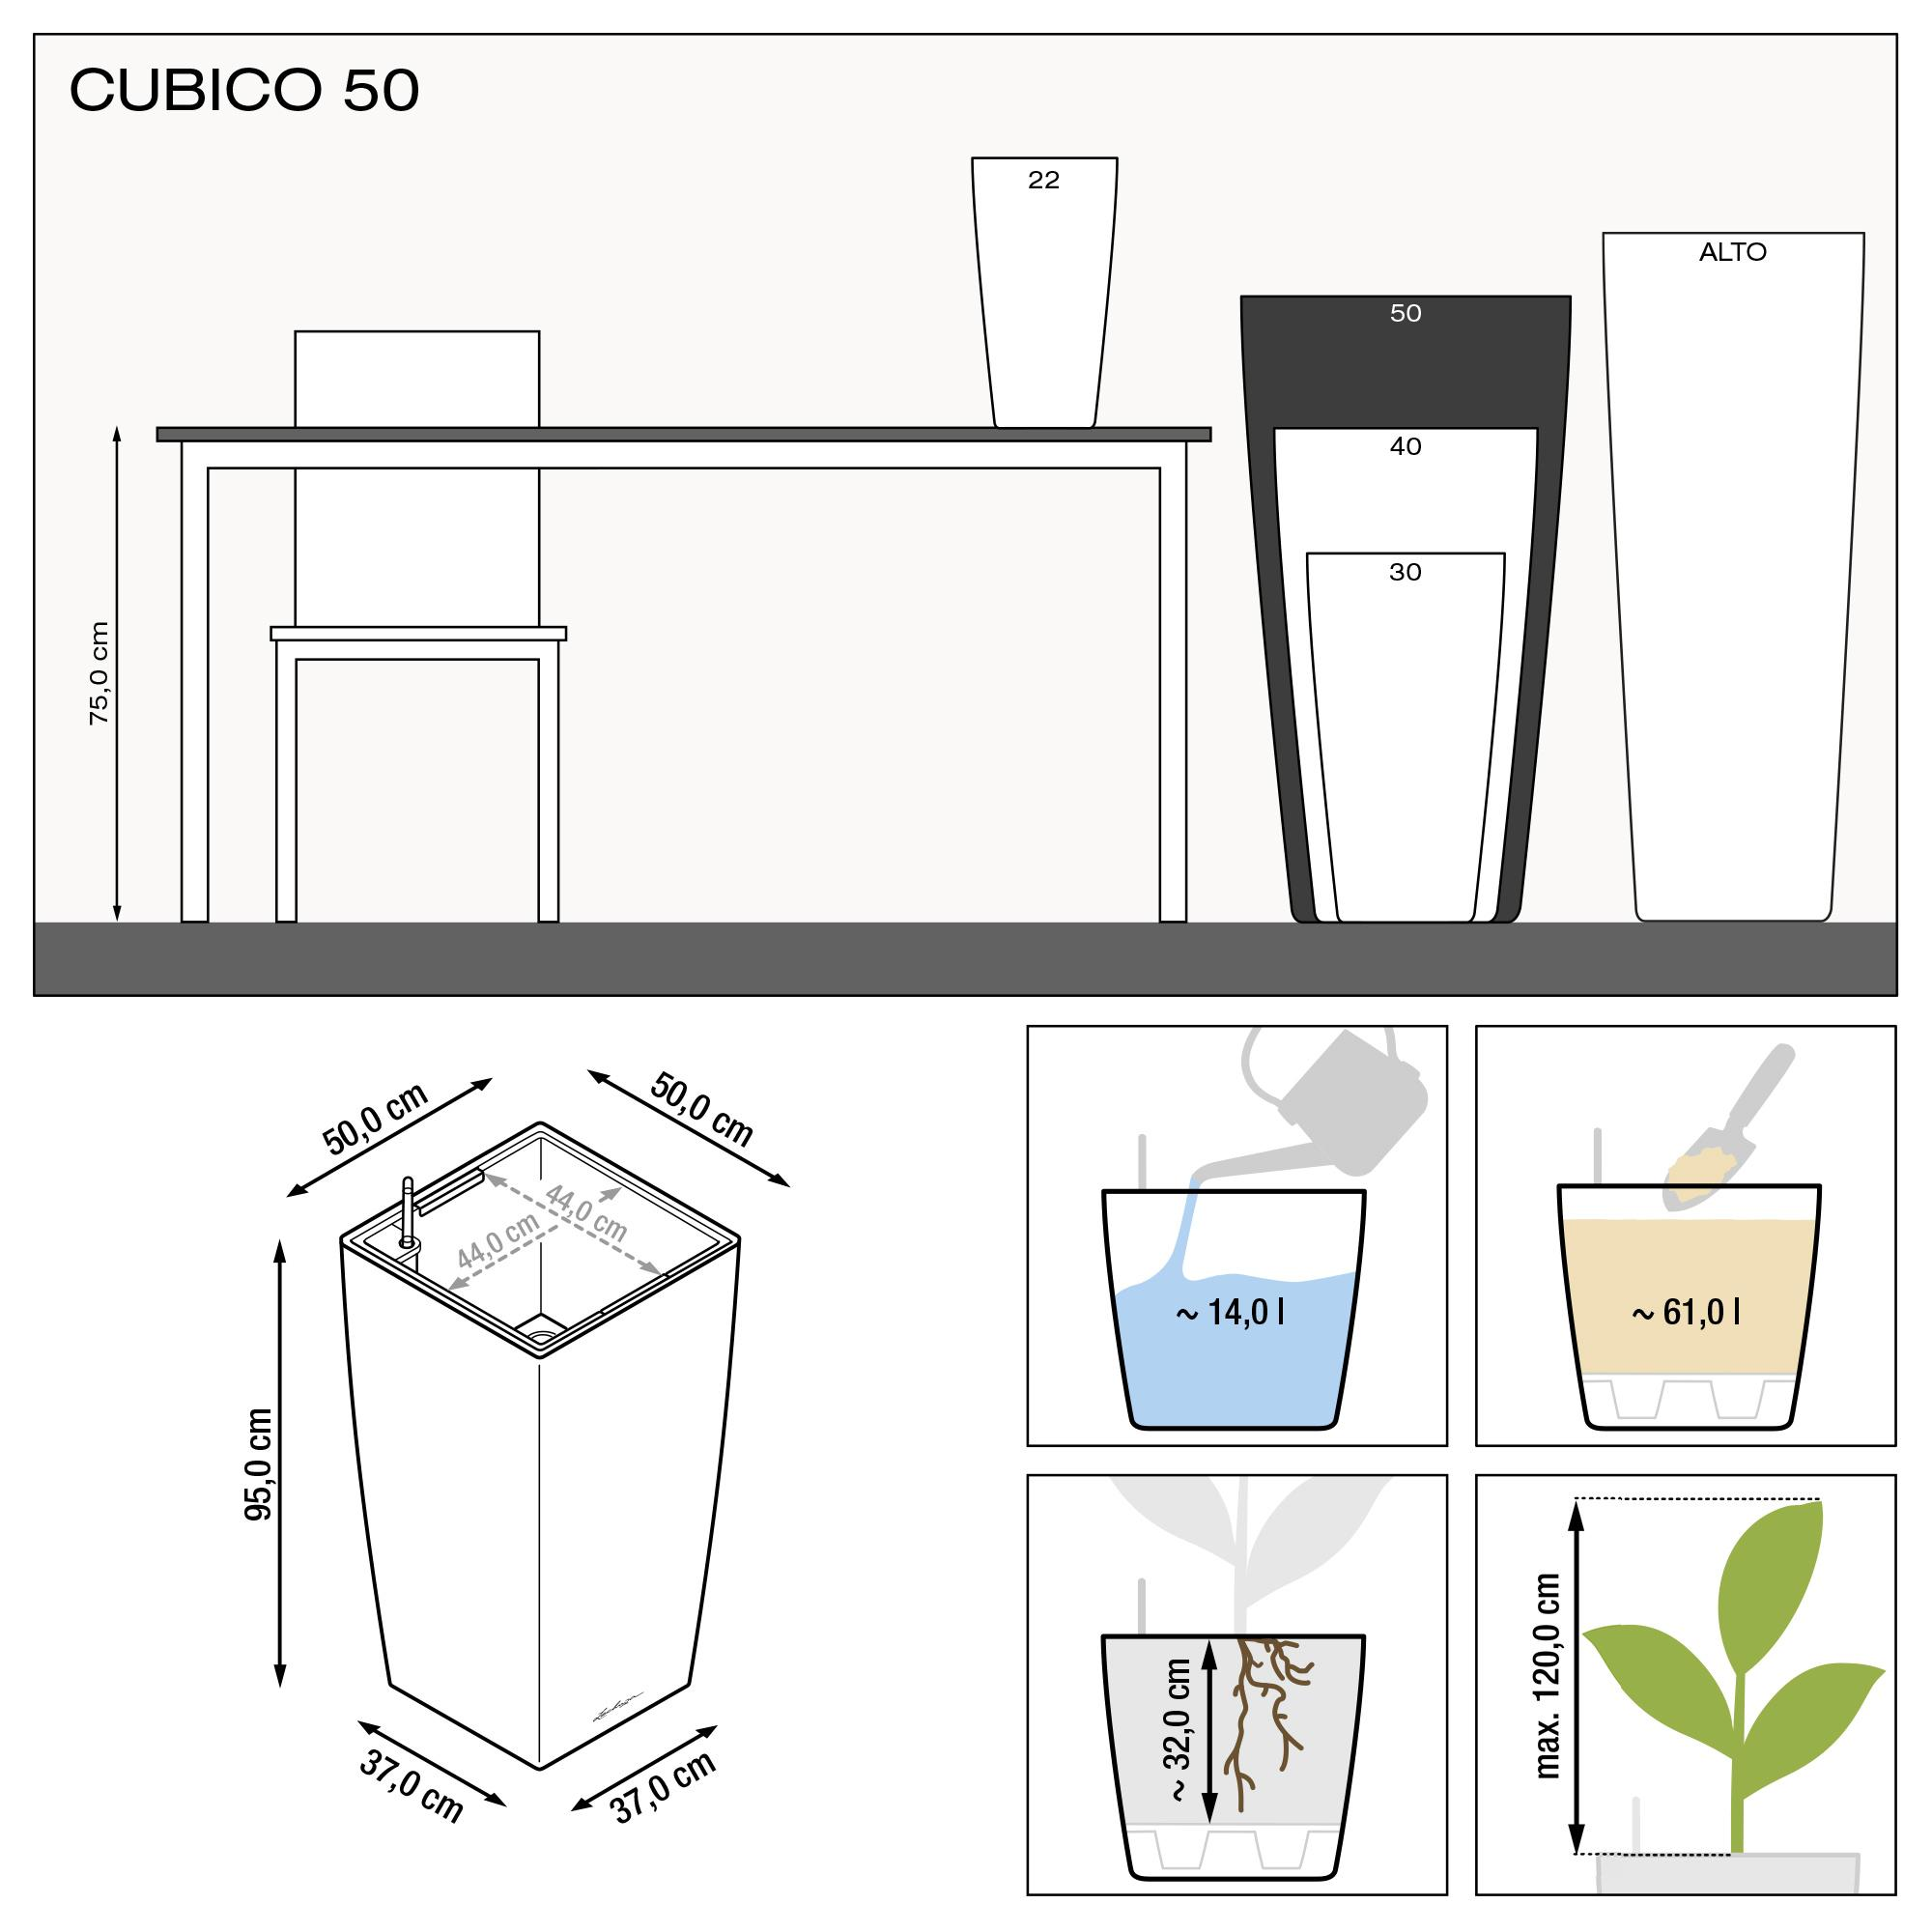 le_cubico50_product_addi_nz